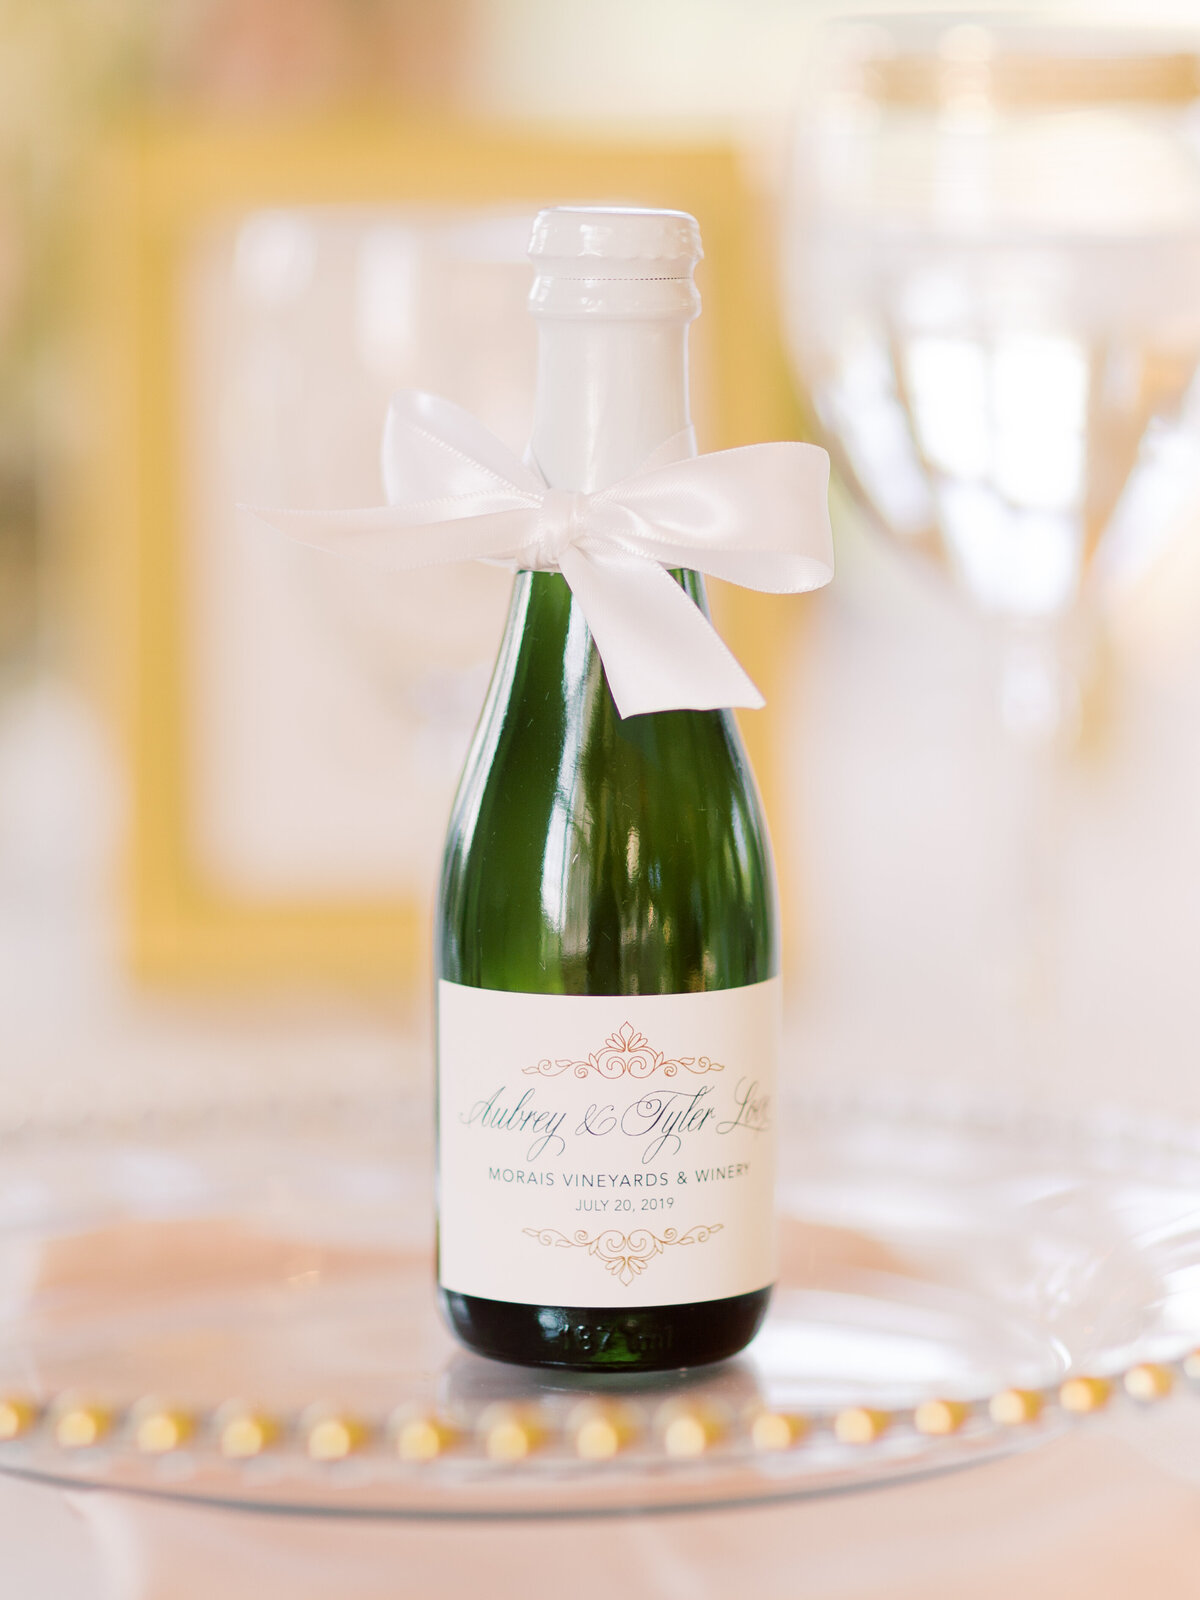 MLP-Aubrey-Tyler-Morais-Vineyards-Winery-Wedding-591